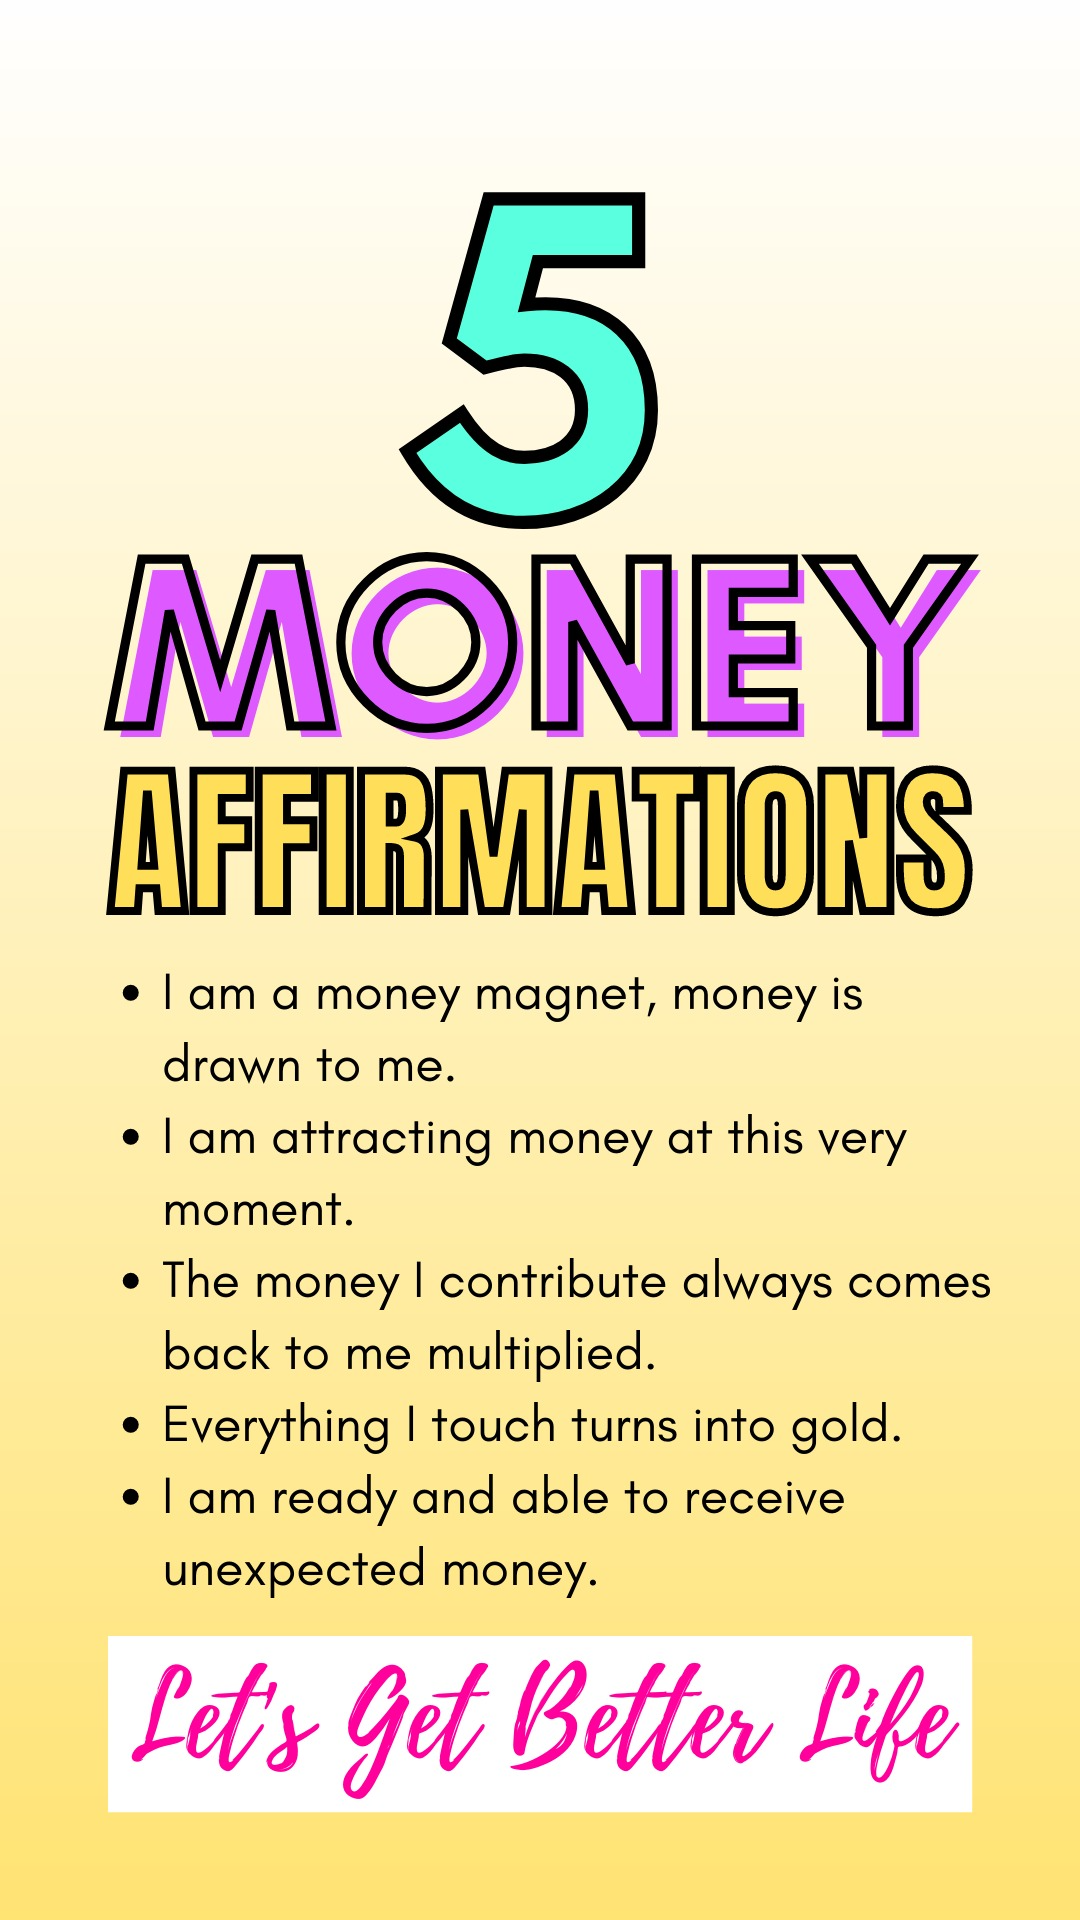 5 Money Affirmations To Attract Wealth And Abundance